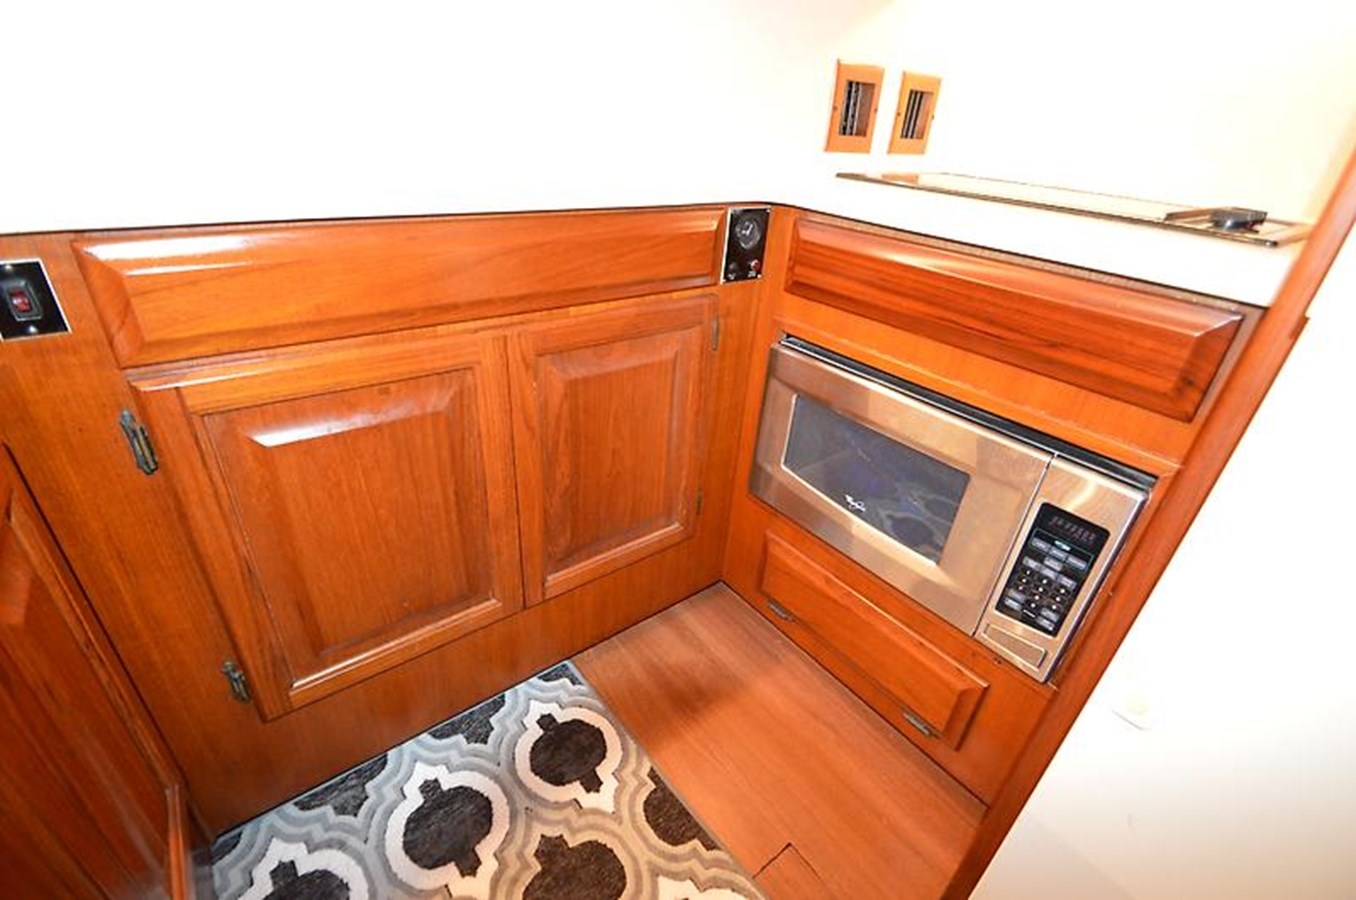 Microwave and Cabinets - 45 VIKING For Sale